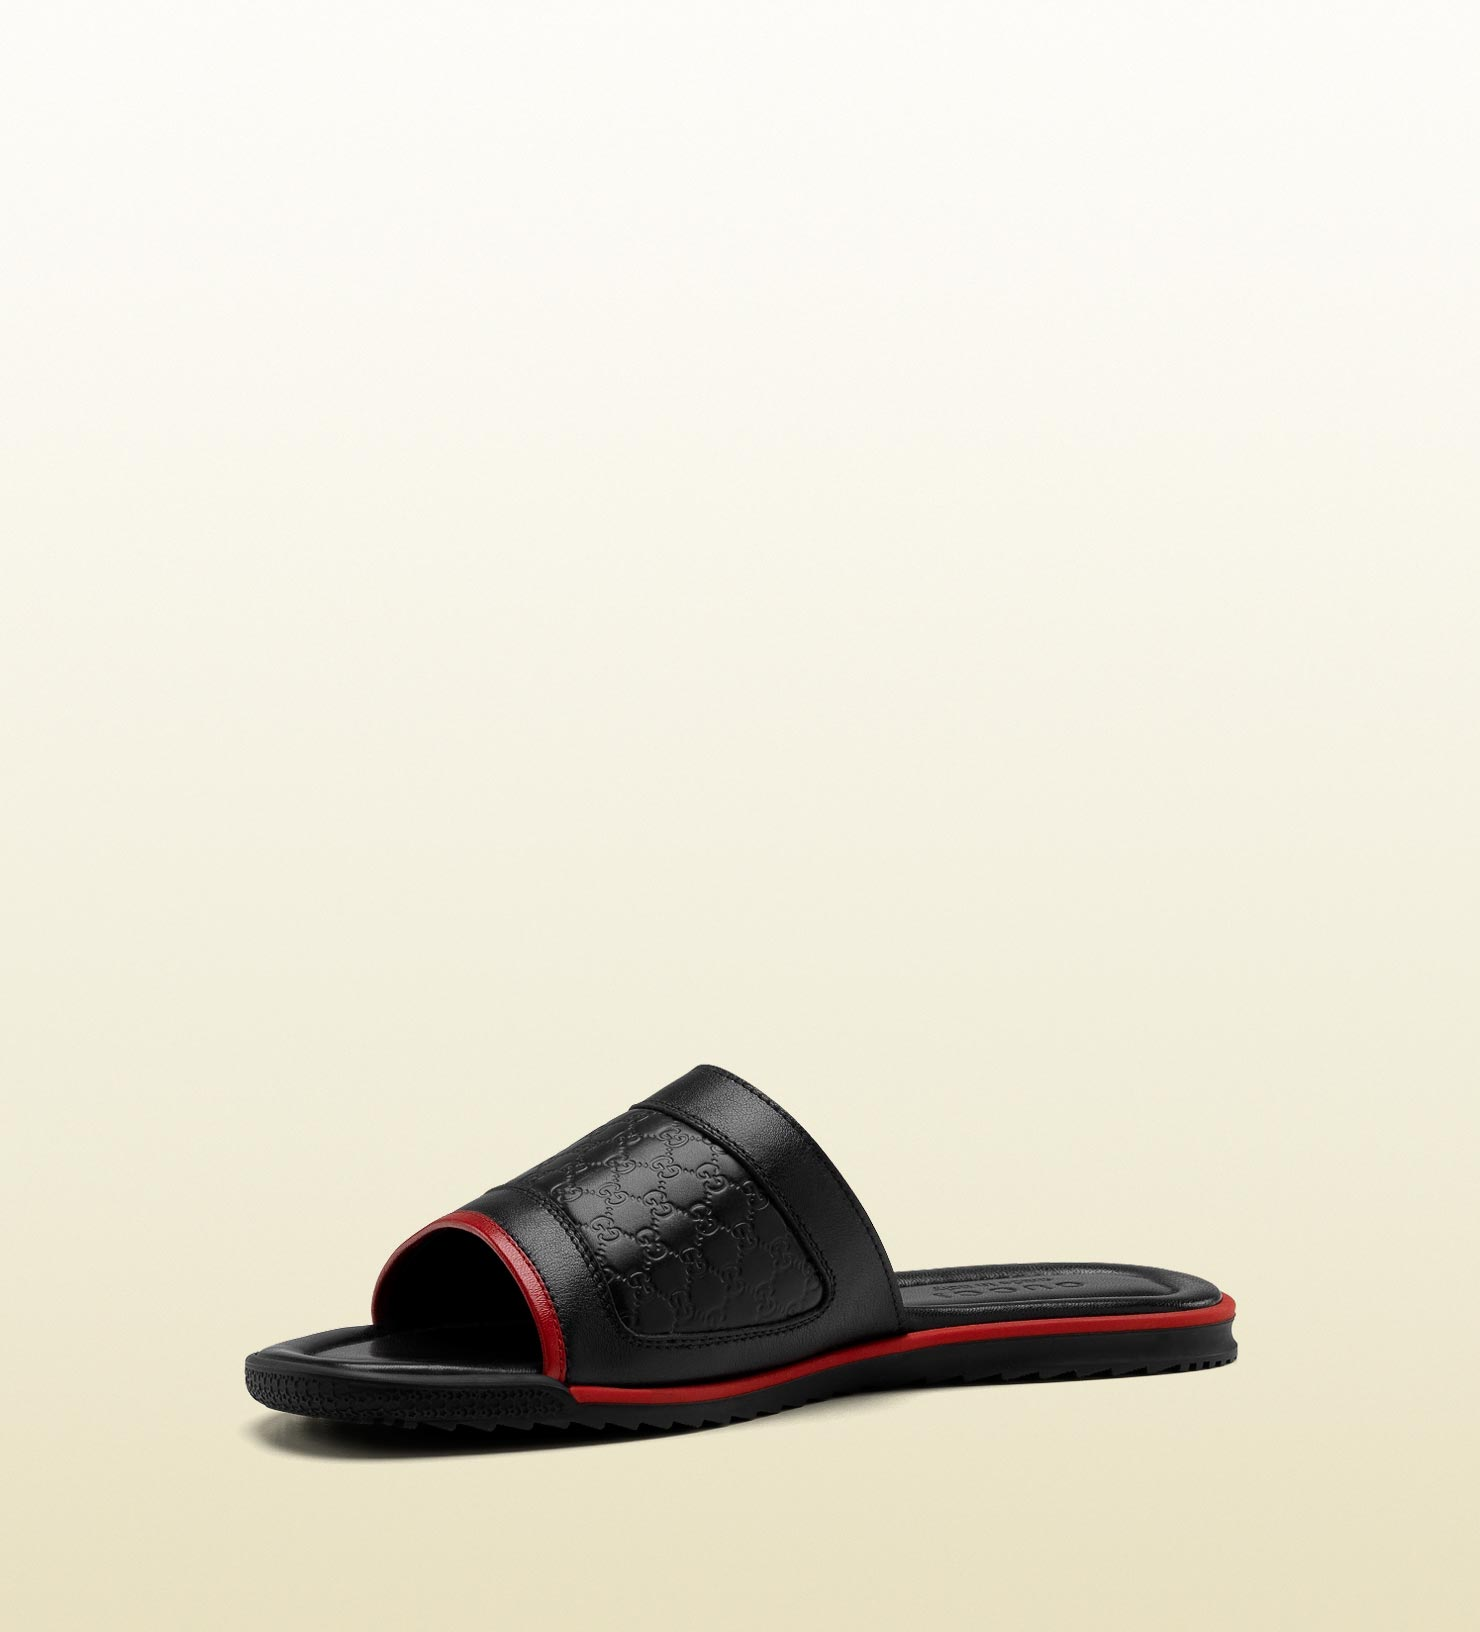 97c15688a7b0 Lyst - Gucci Slide with Signature Web Detail in Black for Men